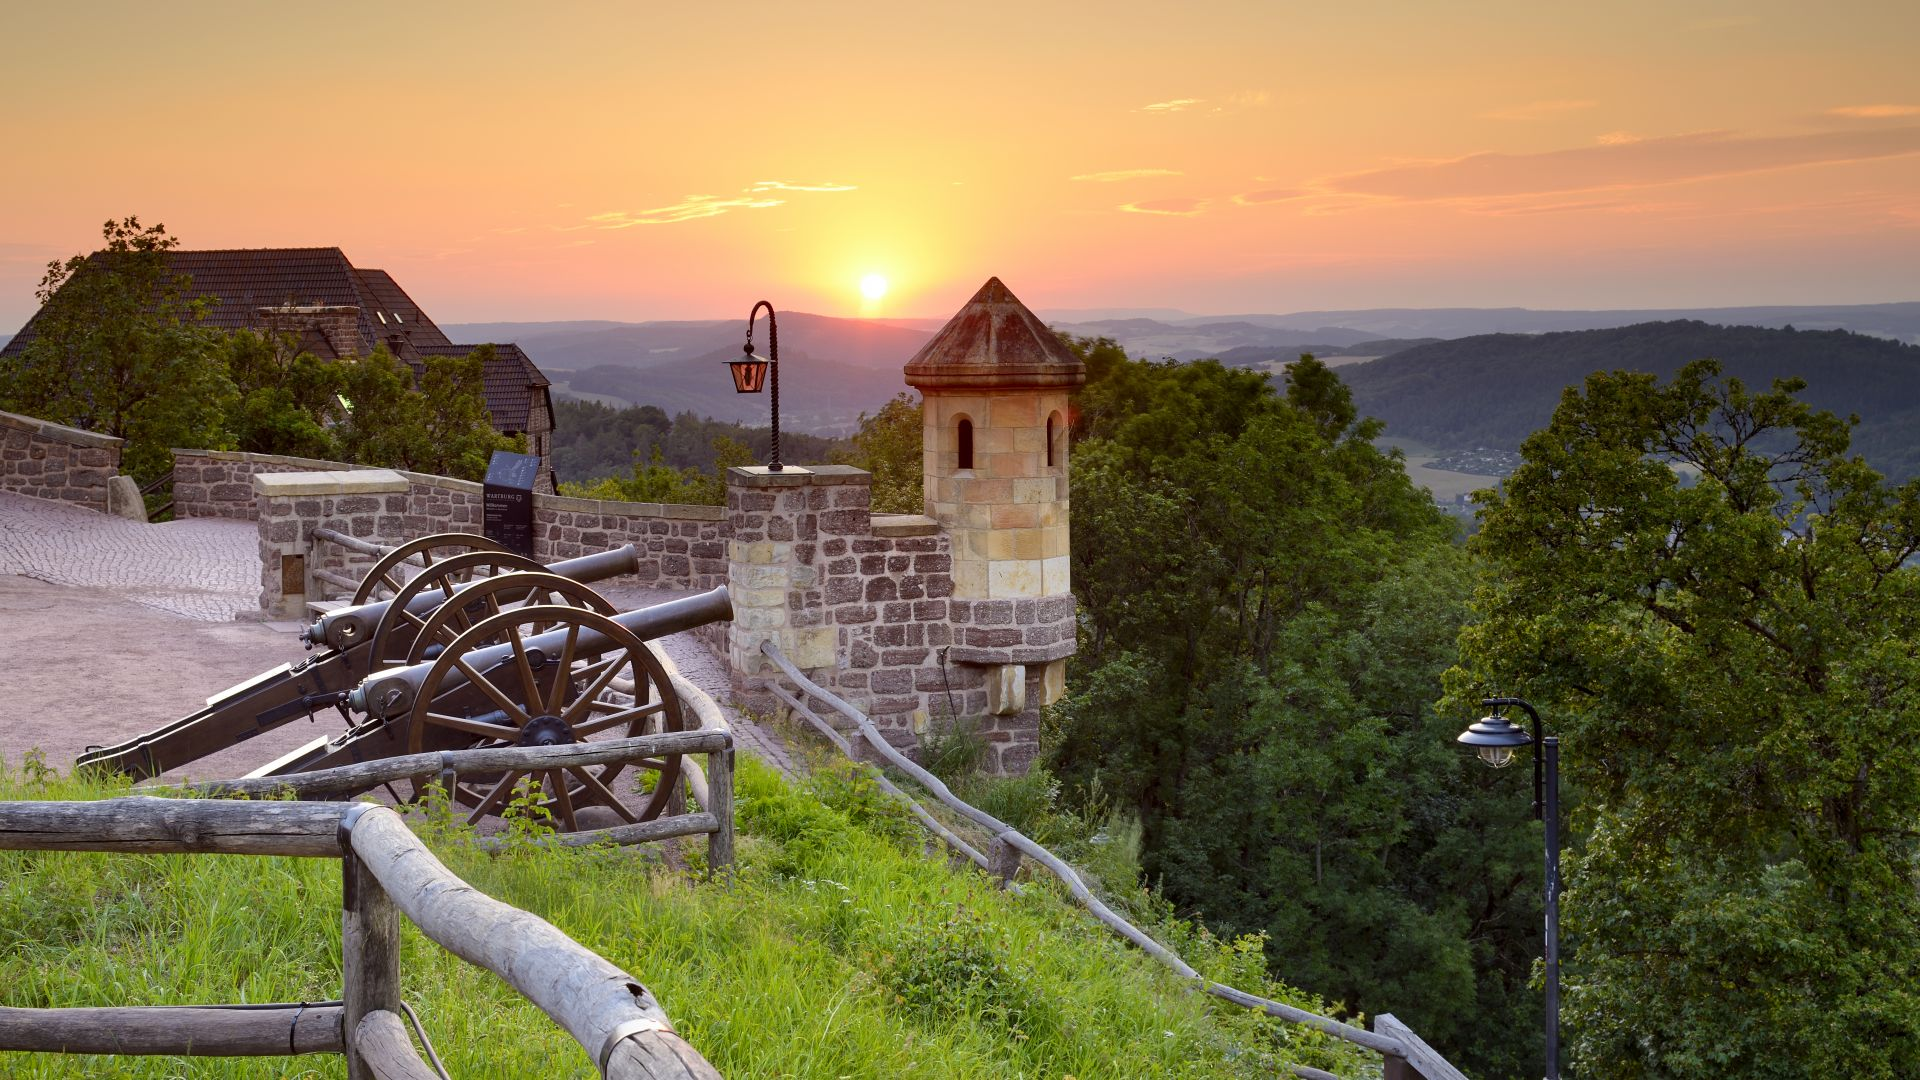 Eisenach: View over two cannons in front of the Wartburg castle to the sunset in the Thuringian Forest